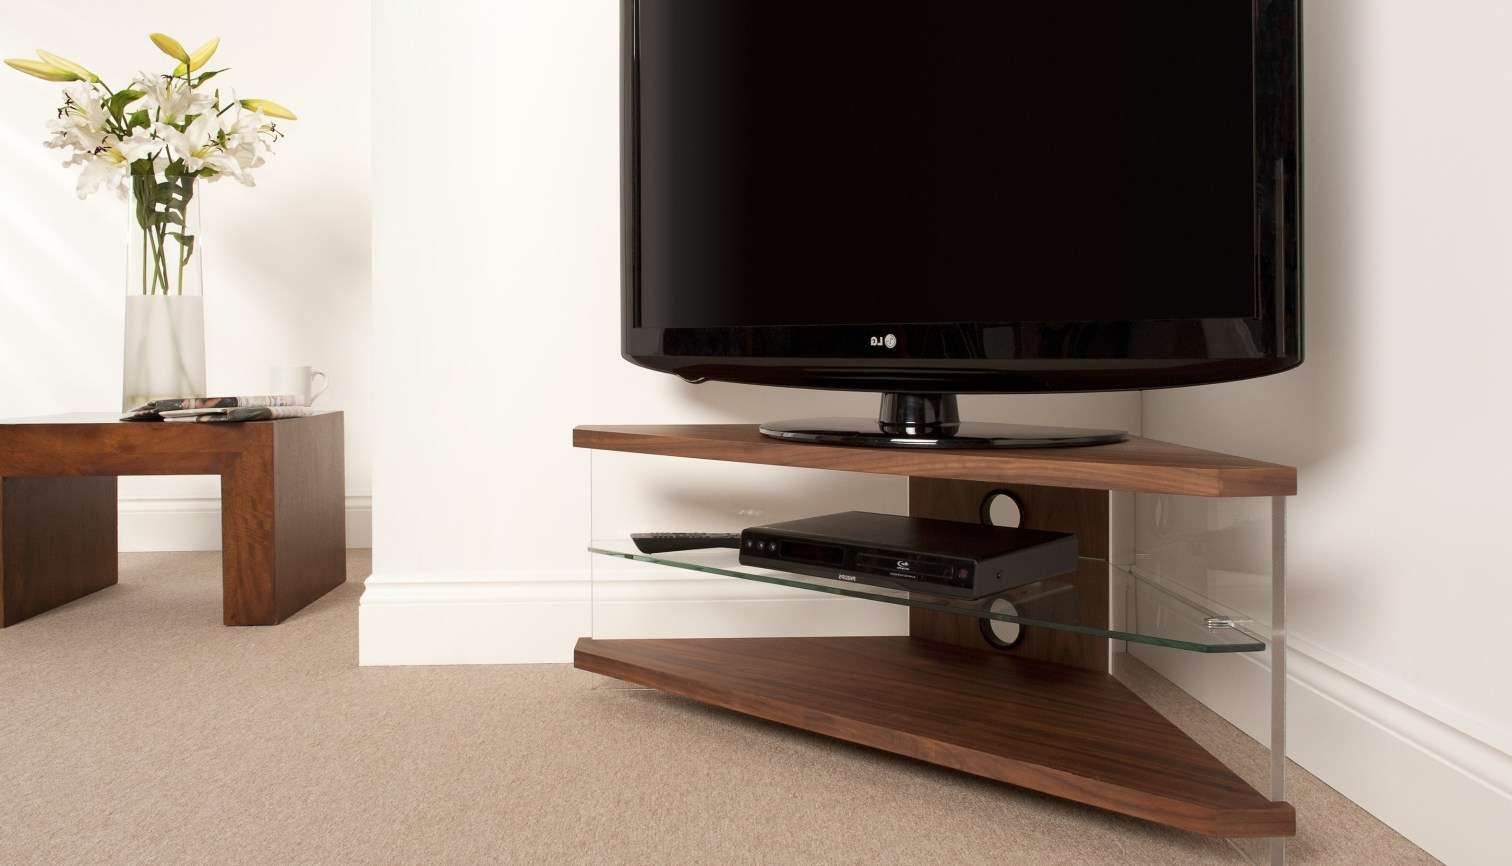 Tv : Enjoy Tv Shows Movies Adopting 12 Small White Tv Stand Ideas Throughout L Shaped Tv Stands (View 14 of 15)